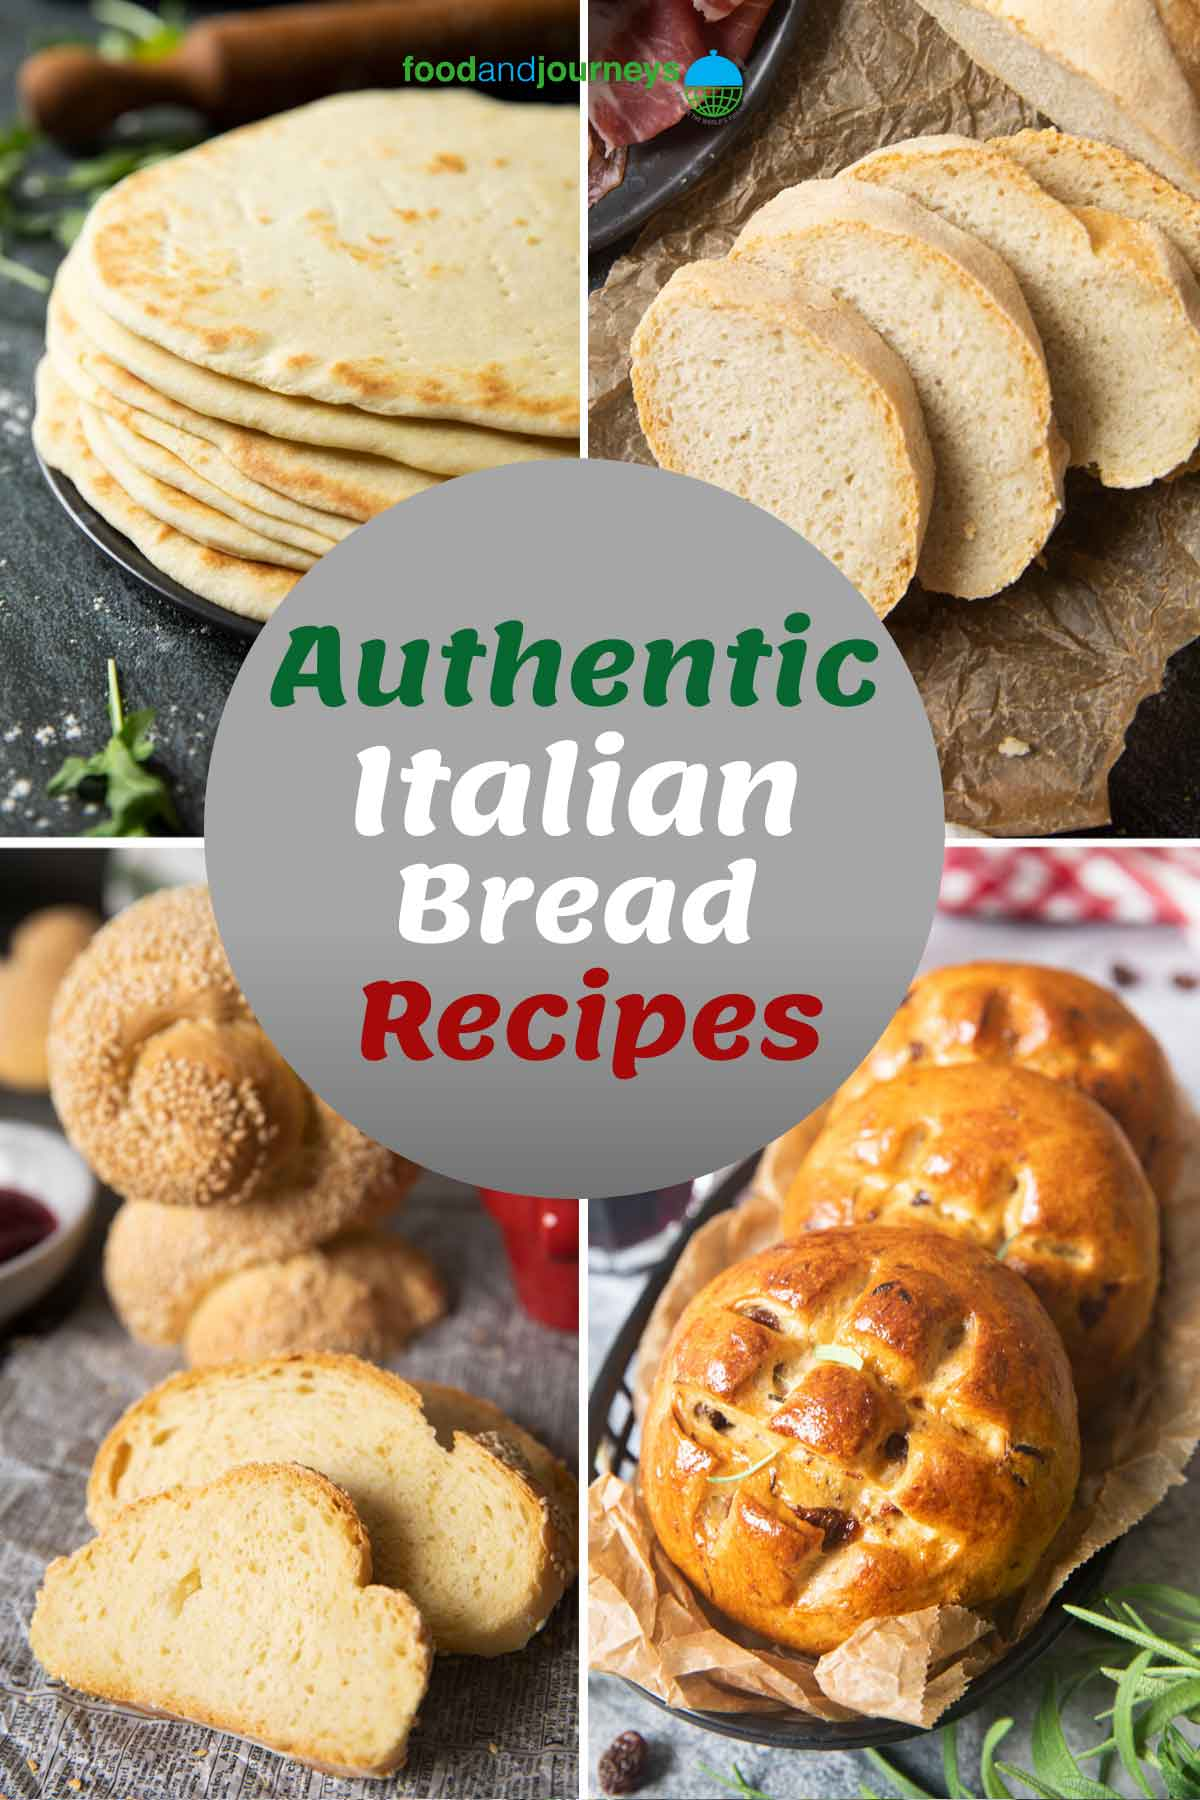 An image showing a collage of traditional Italian breads that you can make at home.